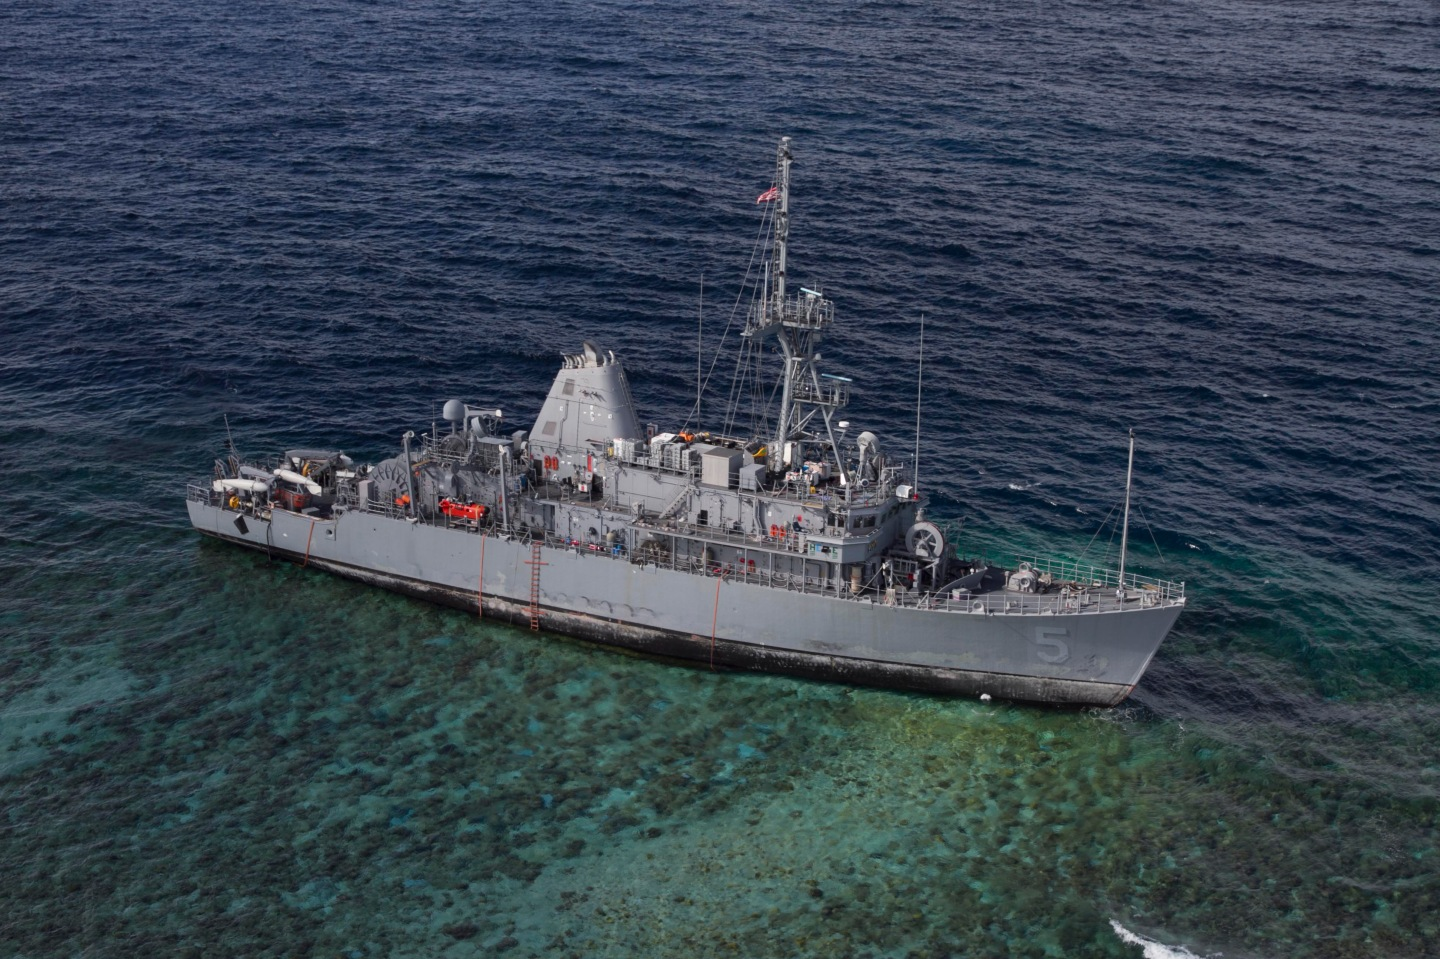 USS_Guardian_aground_in_January_2013 U.S. Navy photo by Aircrewman Tactical Helicopter 3rd Class Geoffrey Trudell